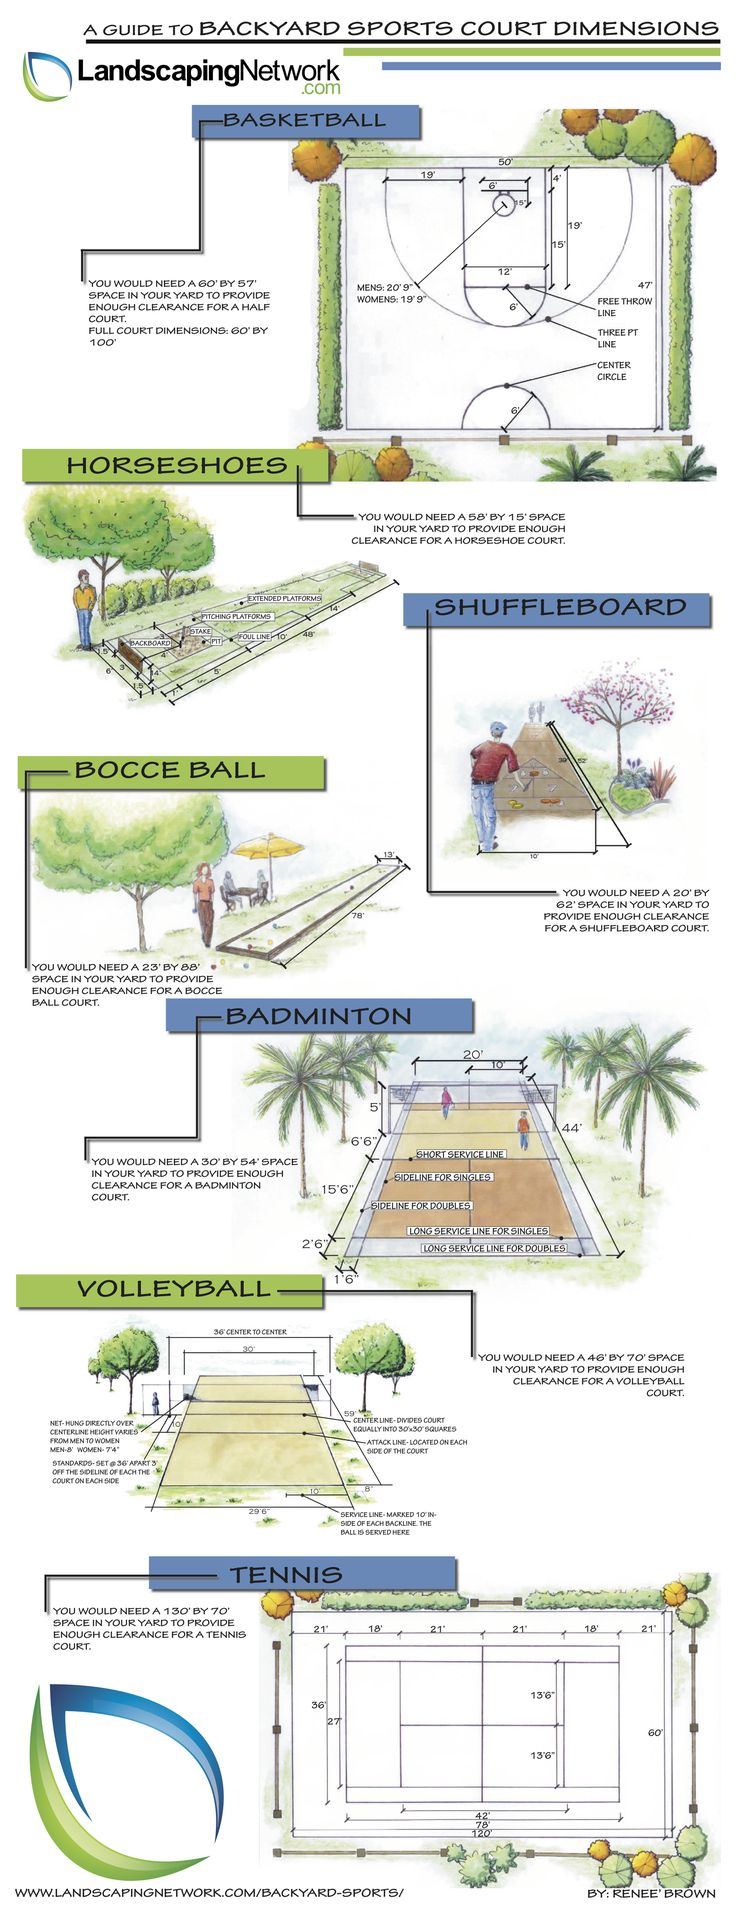 Backyard Sports Court Dimensions - Blog About Infographics and Data Visualization - Cool Infographics